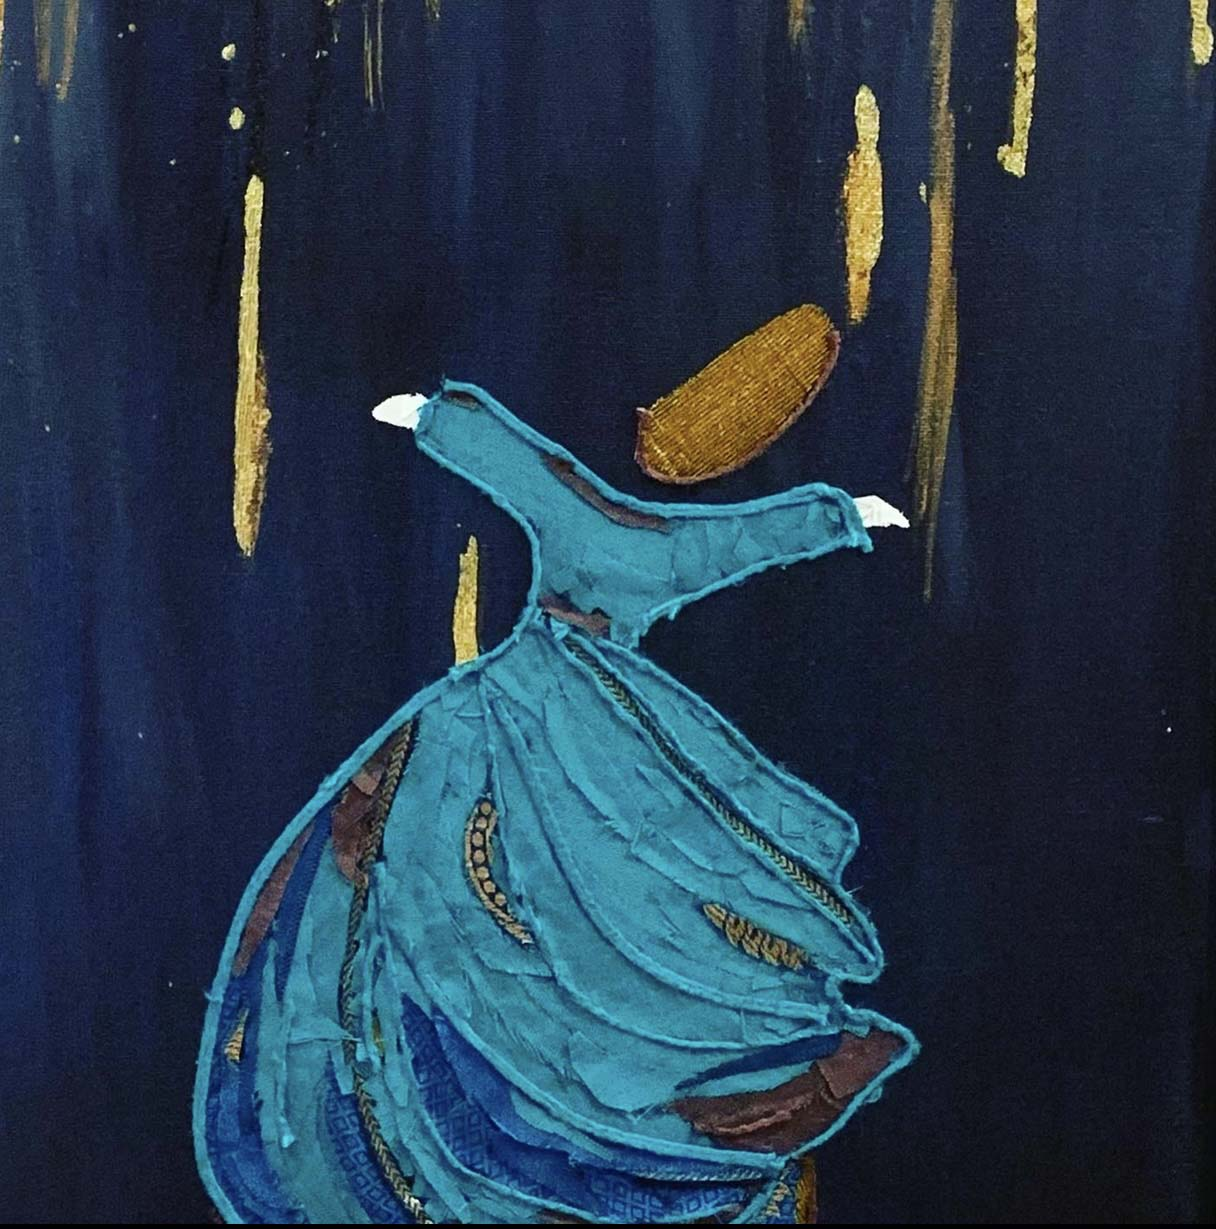 fabric art, acrylic paint, blue, turquoise, mixed media, sufi, swirling dervish, gold,  love, life, dance, rain